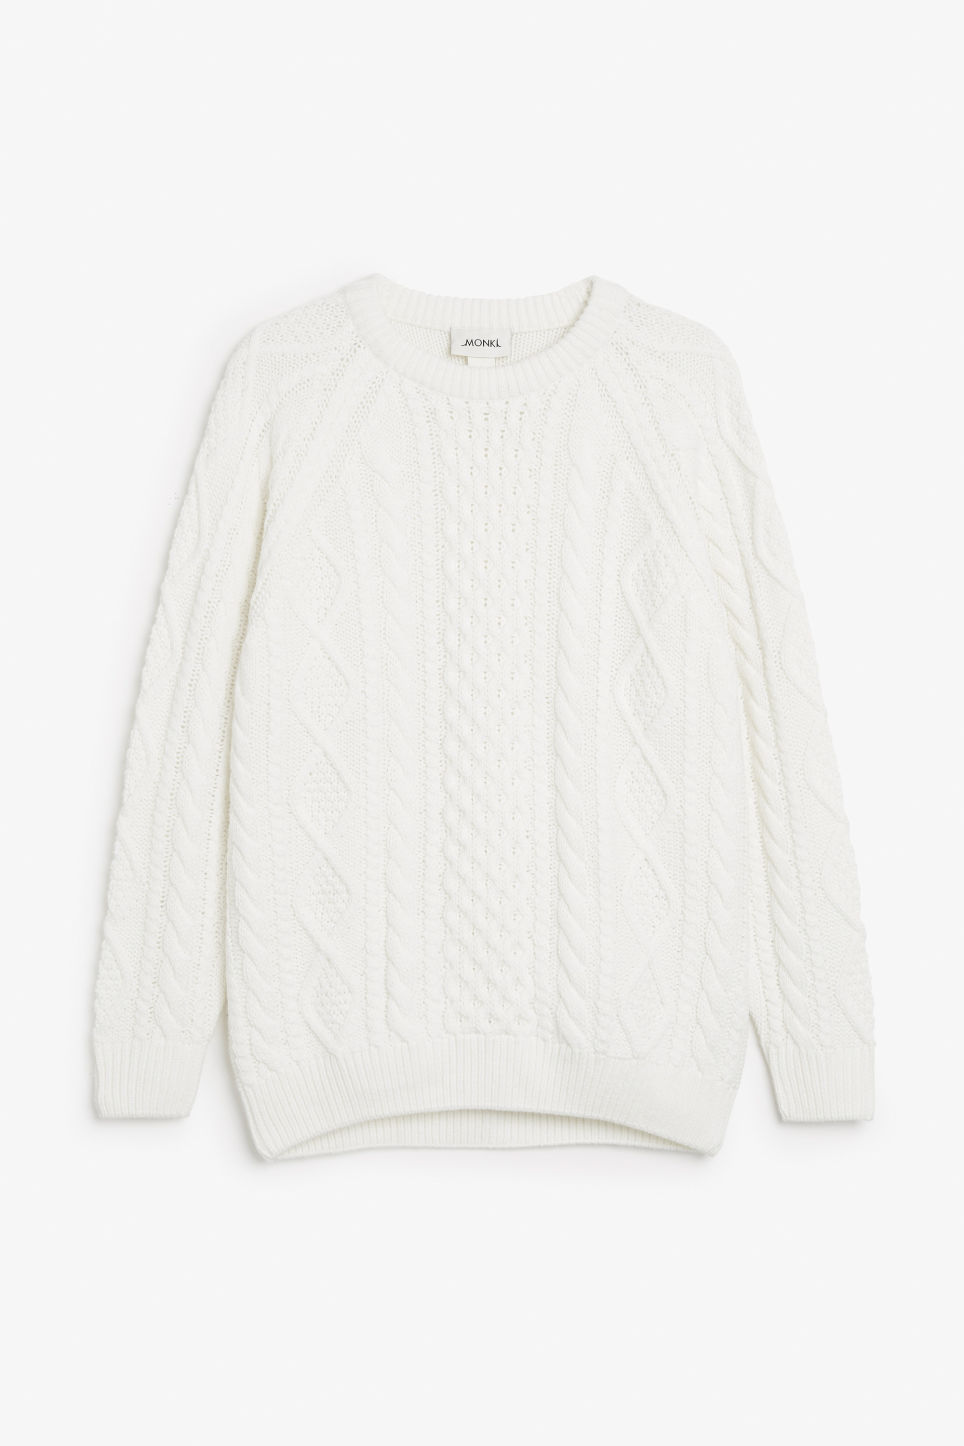 Front image of Monki oversized knit sweater in white